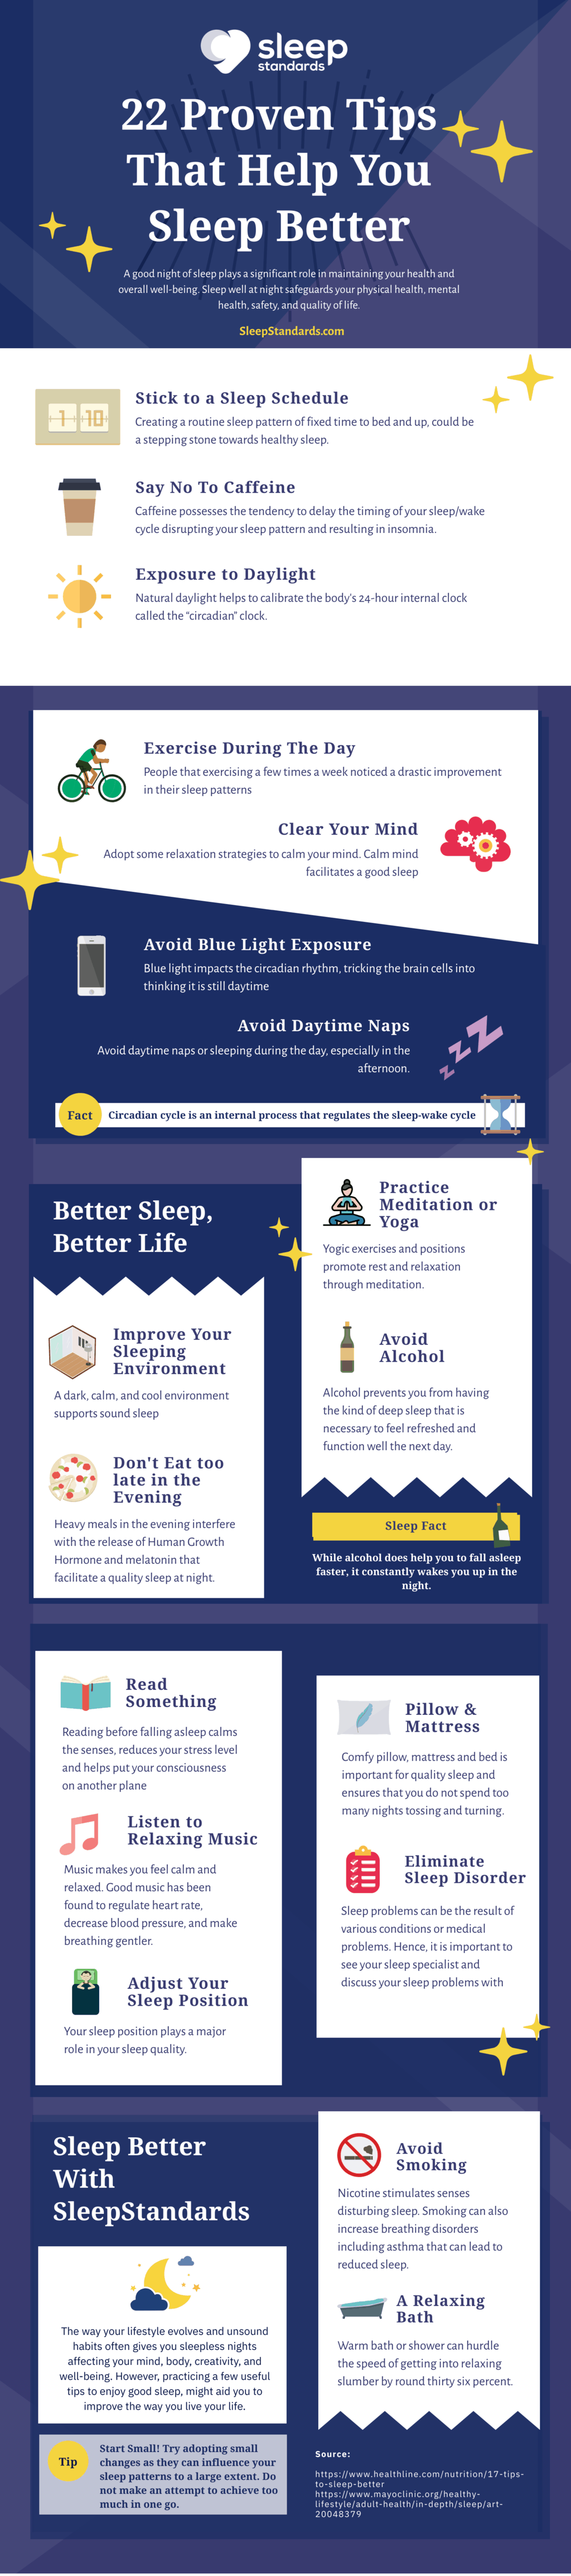 Sleep Tips Infographic